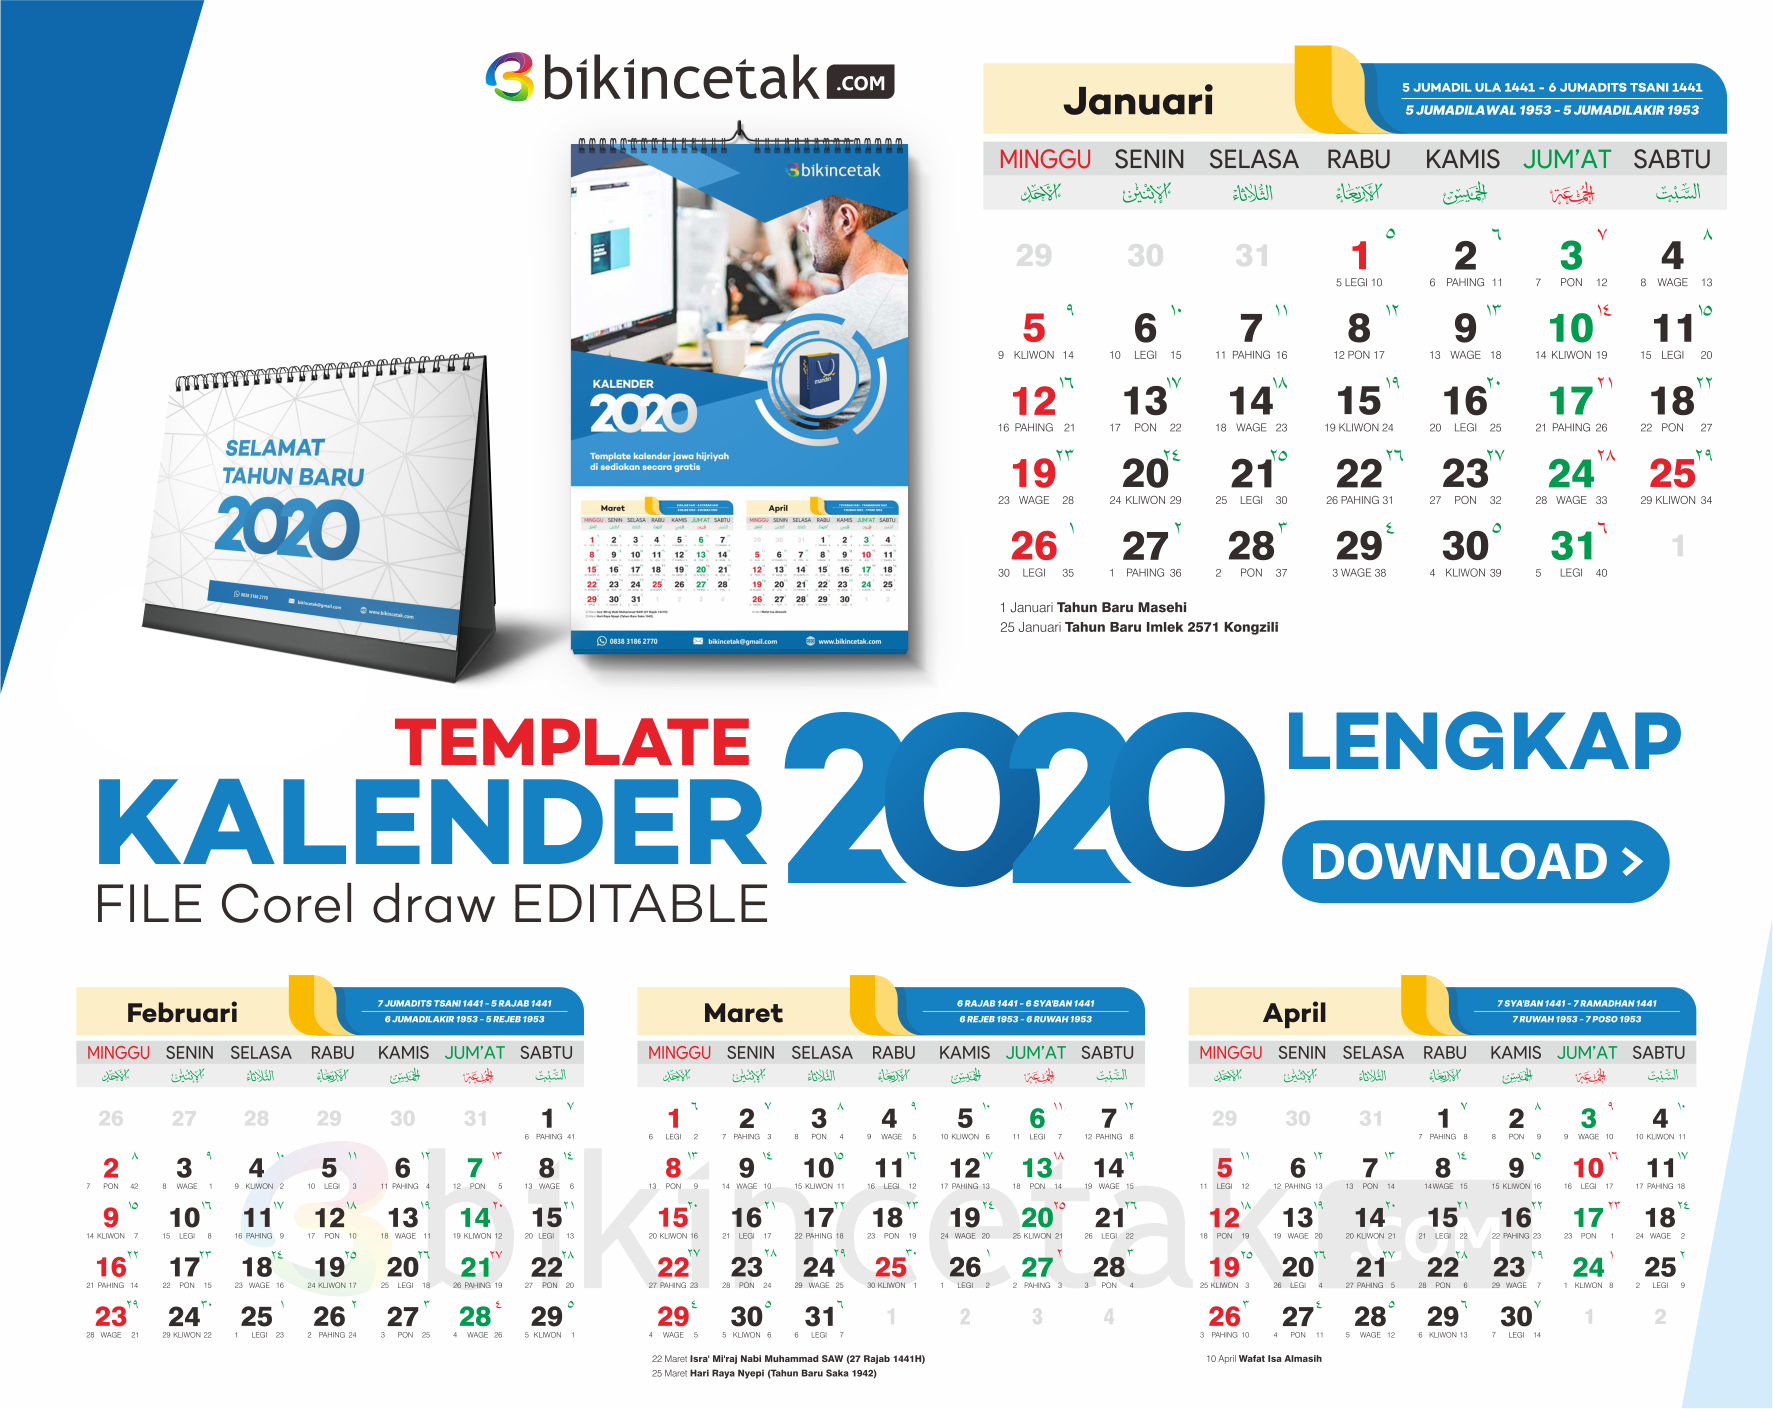 Download GRATIS Template kalender 2020 Lengkap FREE